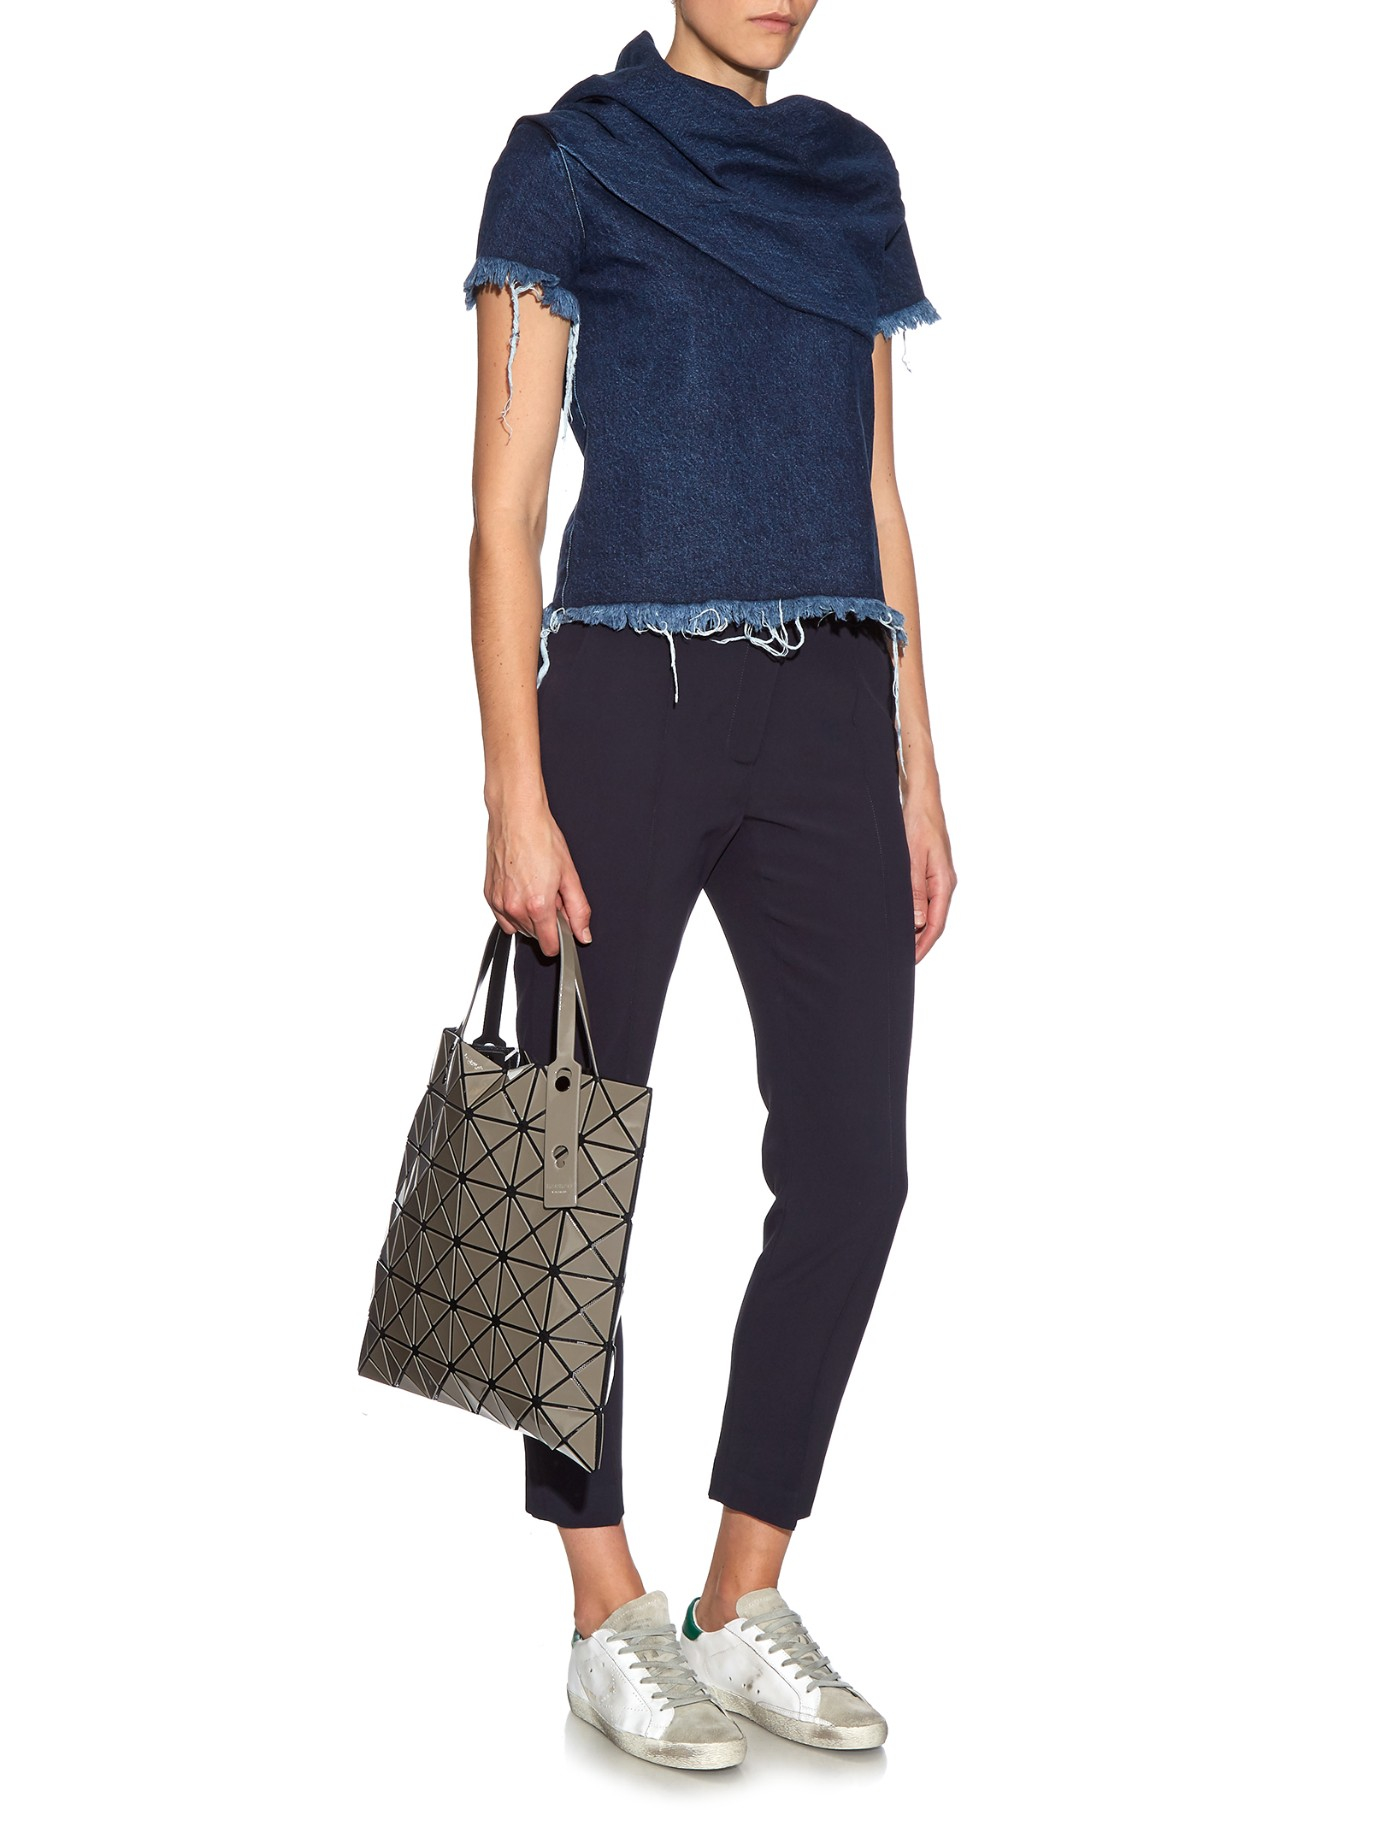 300dcd4202c Lyst - Bao Bao Issey Miyake Lucent Basic Tote in Gray